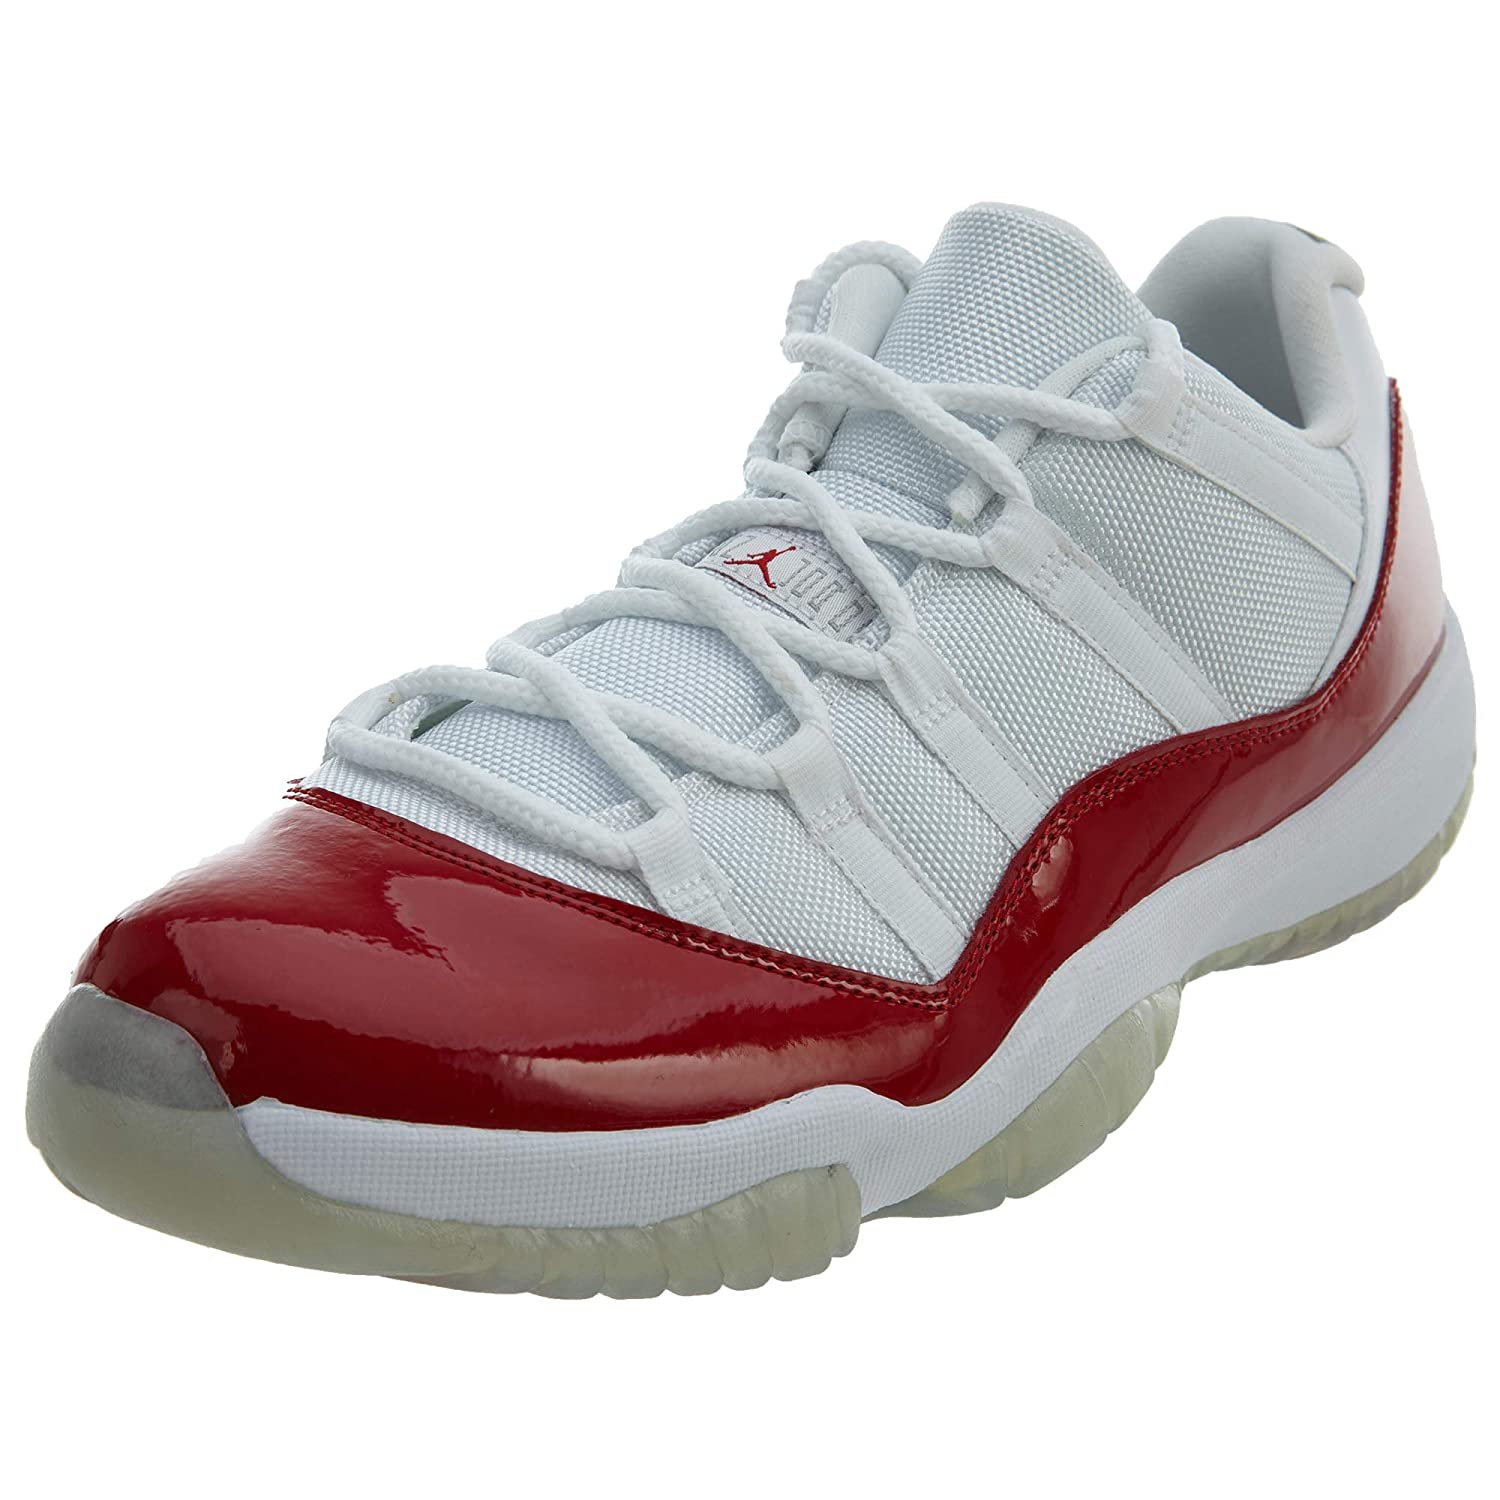 online store df62b 4b54d Nike Men s Air Jordan 11 Retro Low Basketball Shoes  Amazon.co.uk  Shoes    Bags